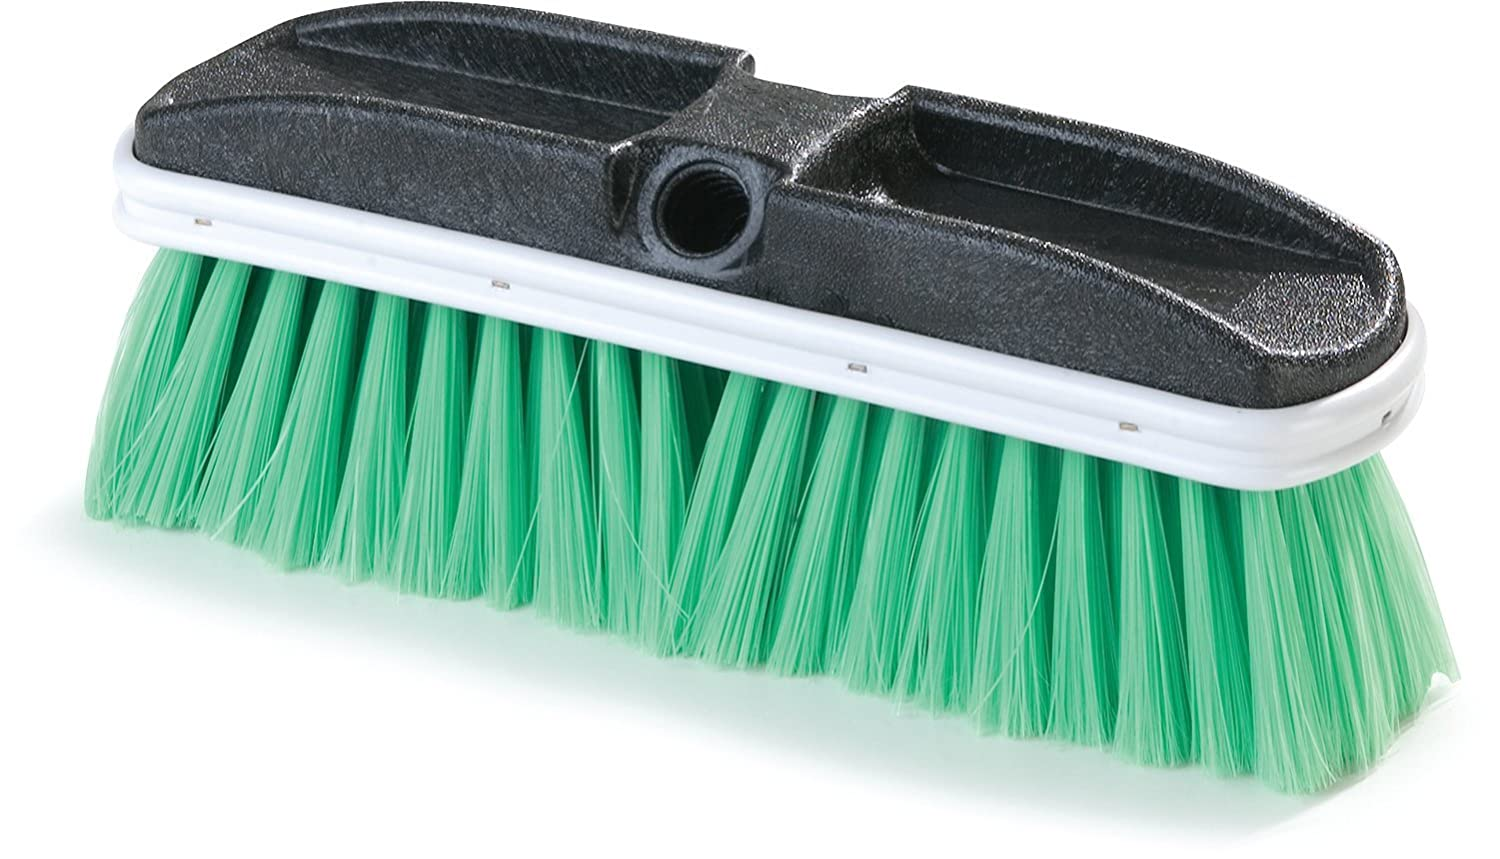 Carlisle 3646875 Flo-Thru Plastic Auto Wash Brush With Flagged Nylex Bristles, 10